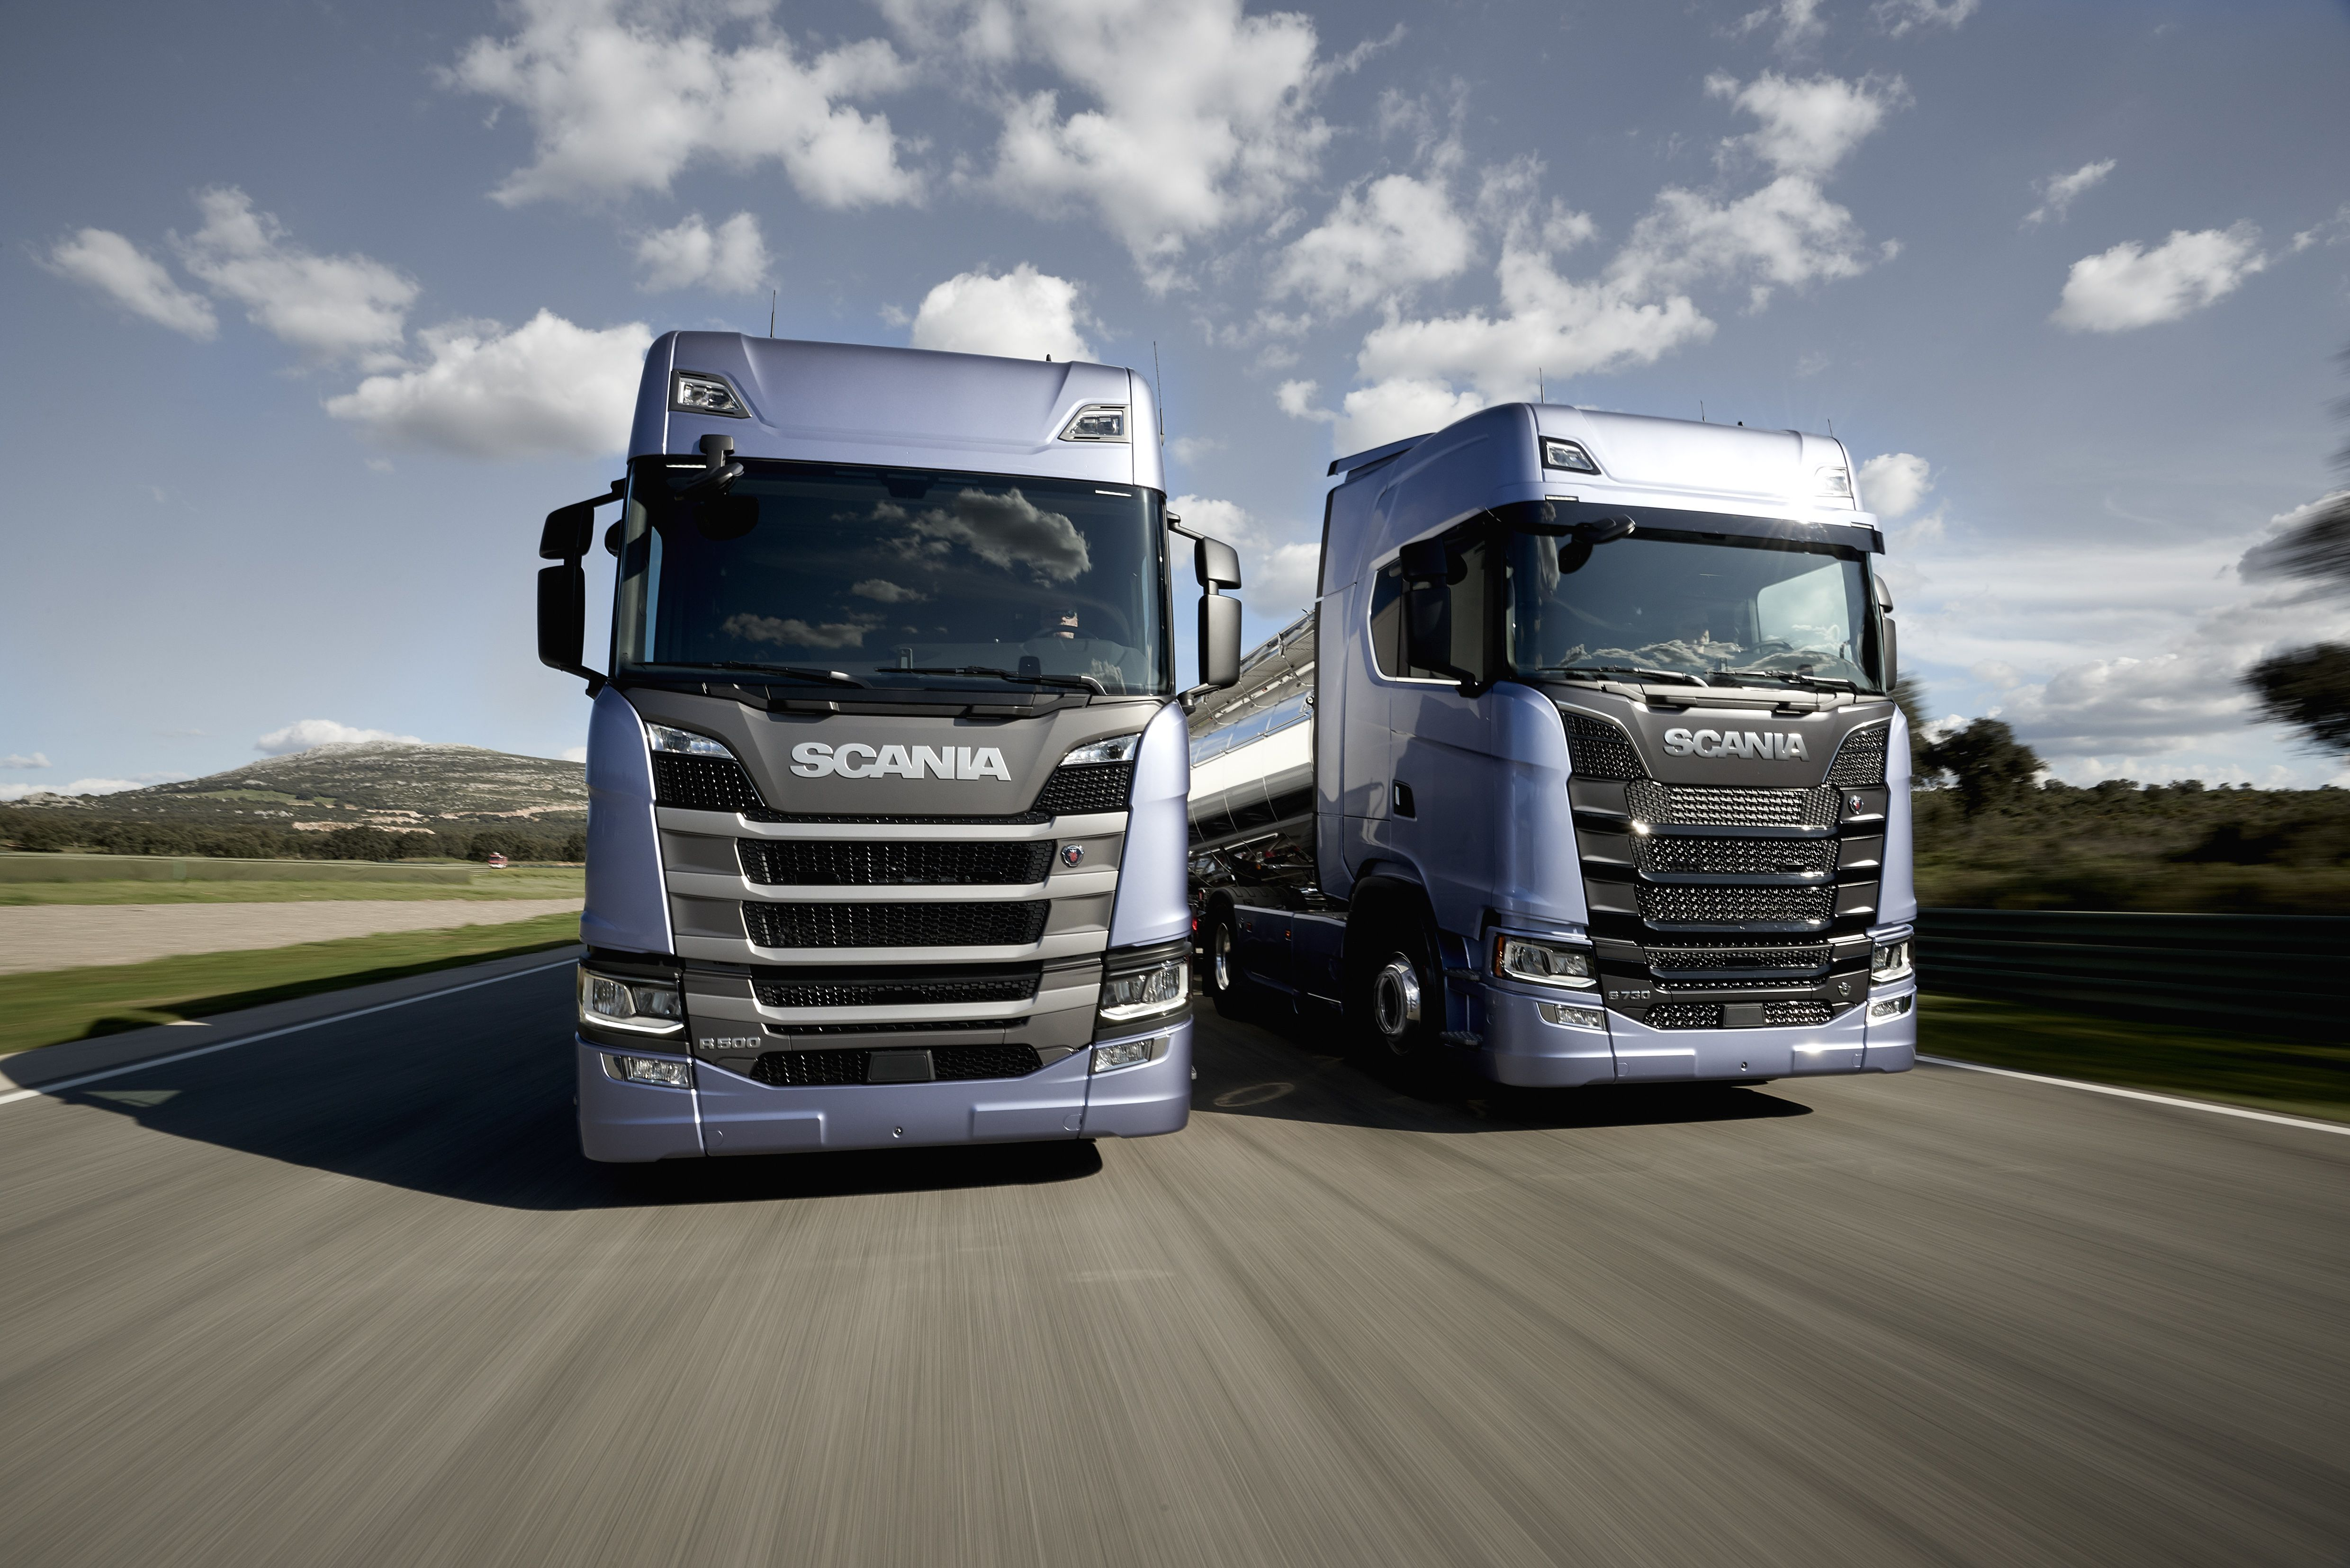 Scania is introducing a new truck range the result of ten years of development